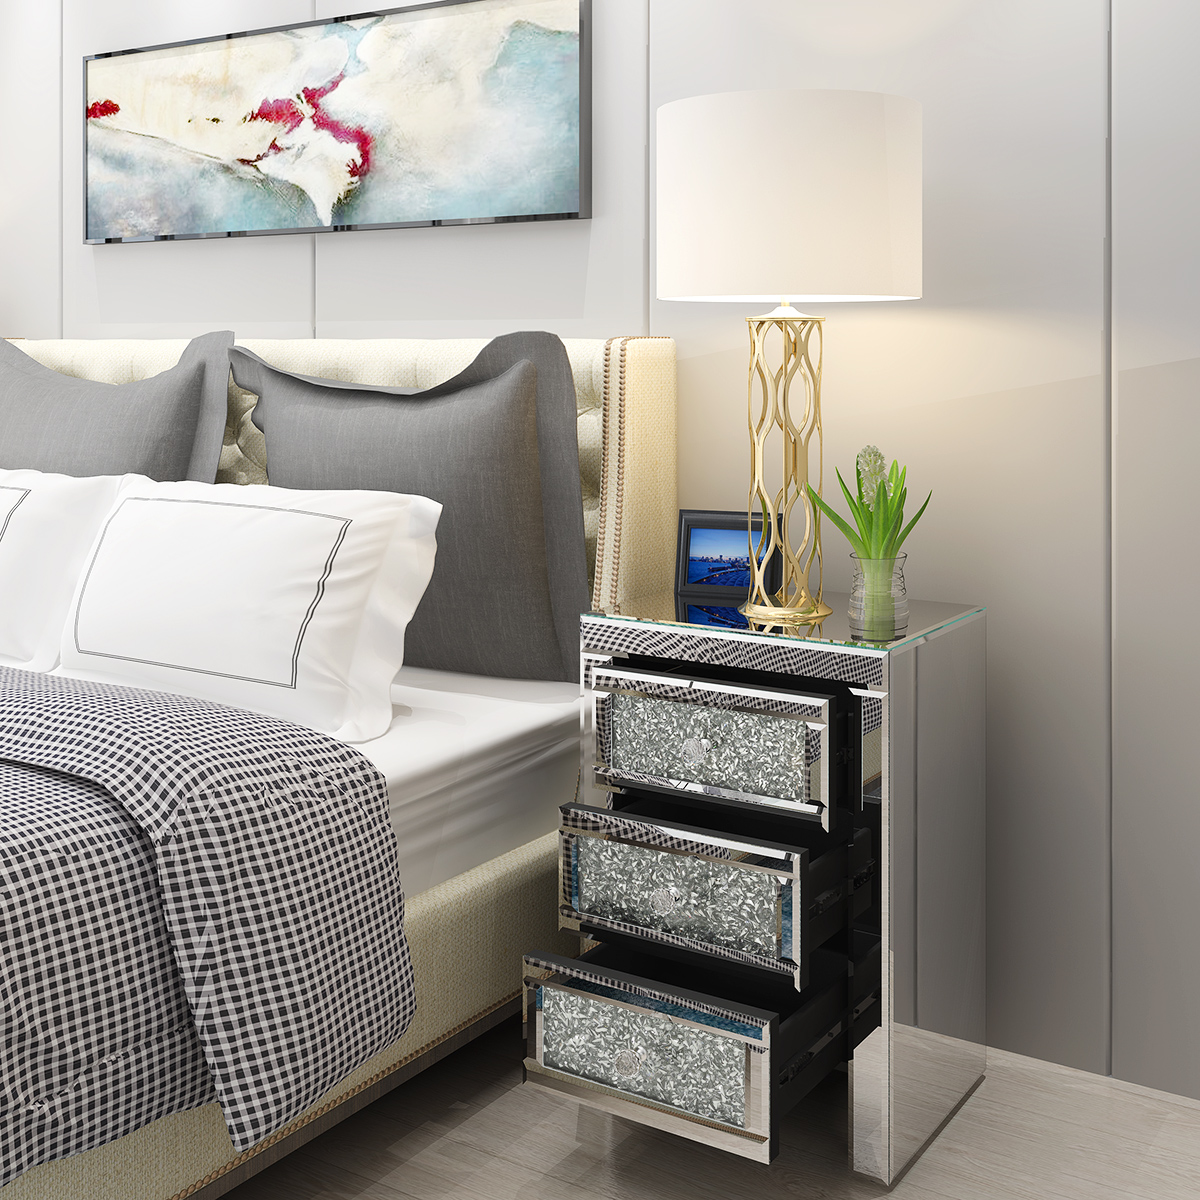 Panana Venetian Mirrored Glass Bedside Table With Drawers Glass Handles Mirror Bedroom Nightstand